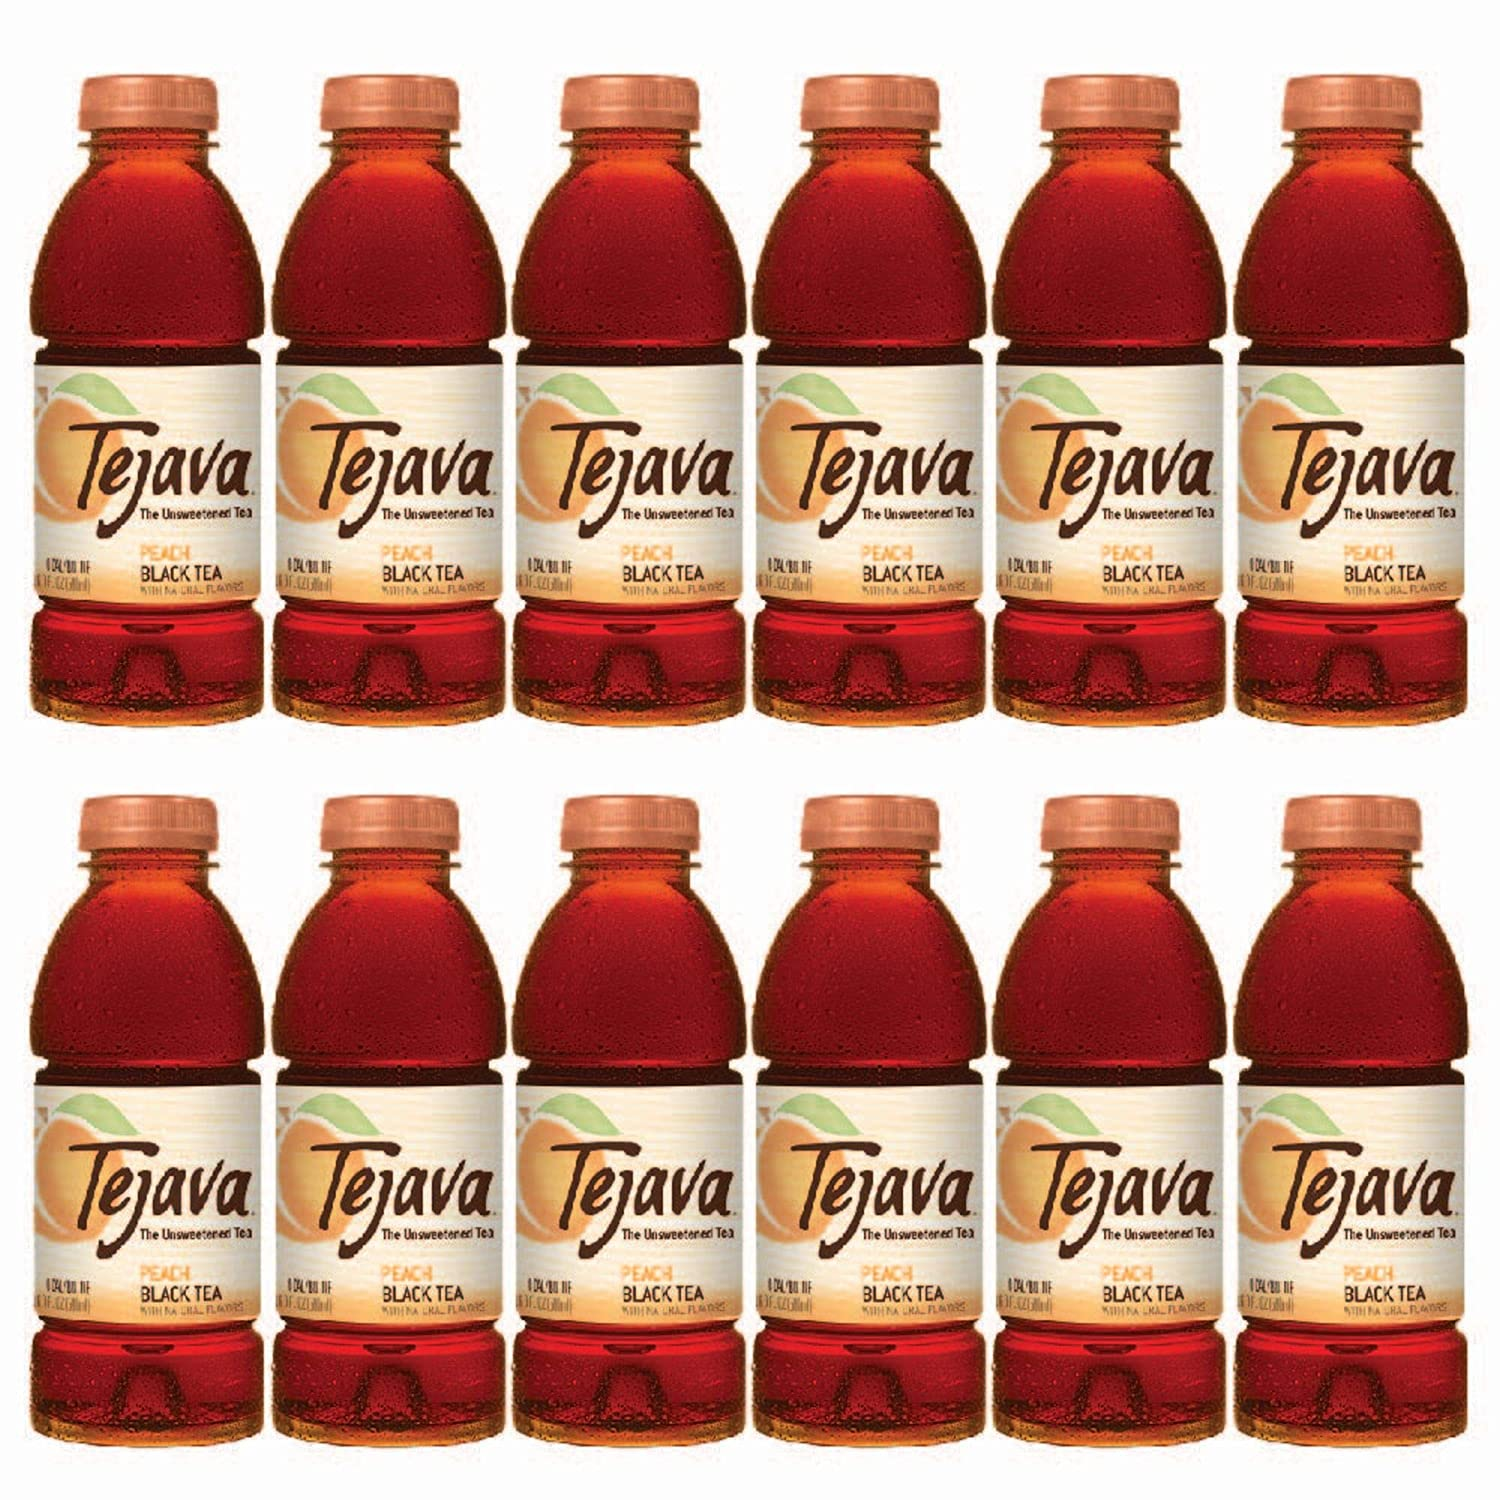 Tejava Unsweetened Peach Iced Tea, 16.9 Ounce PET Bottles, Natural, Non-GMO-Verified, Rainforest Alliance-Certified (12 Pack)